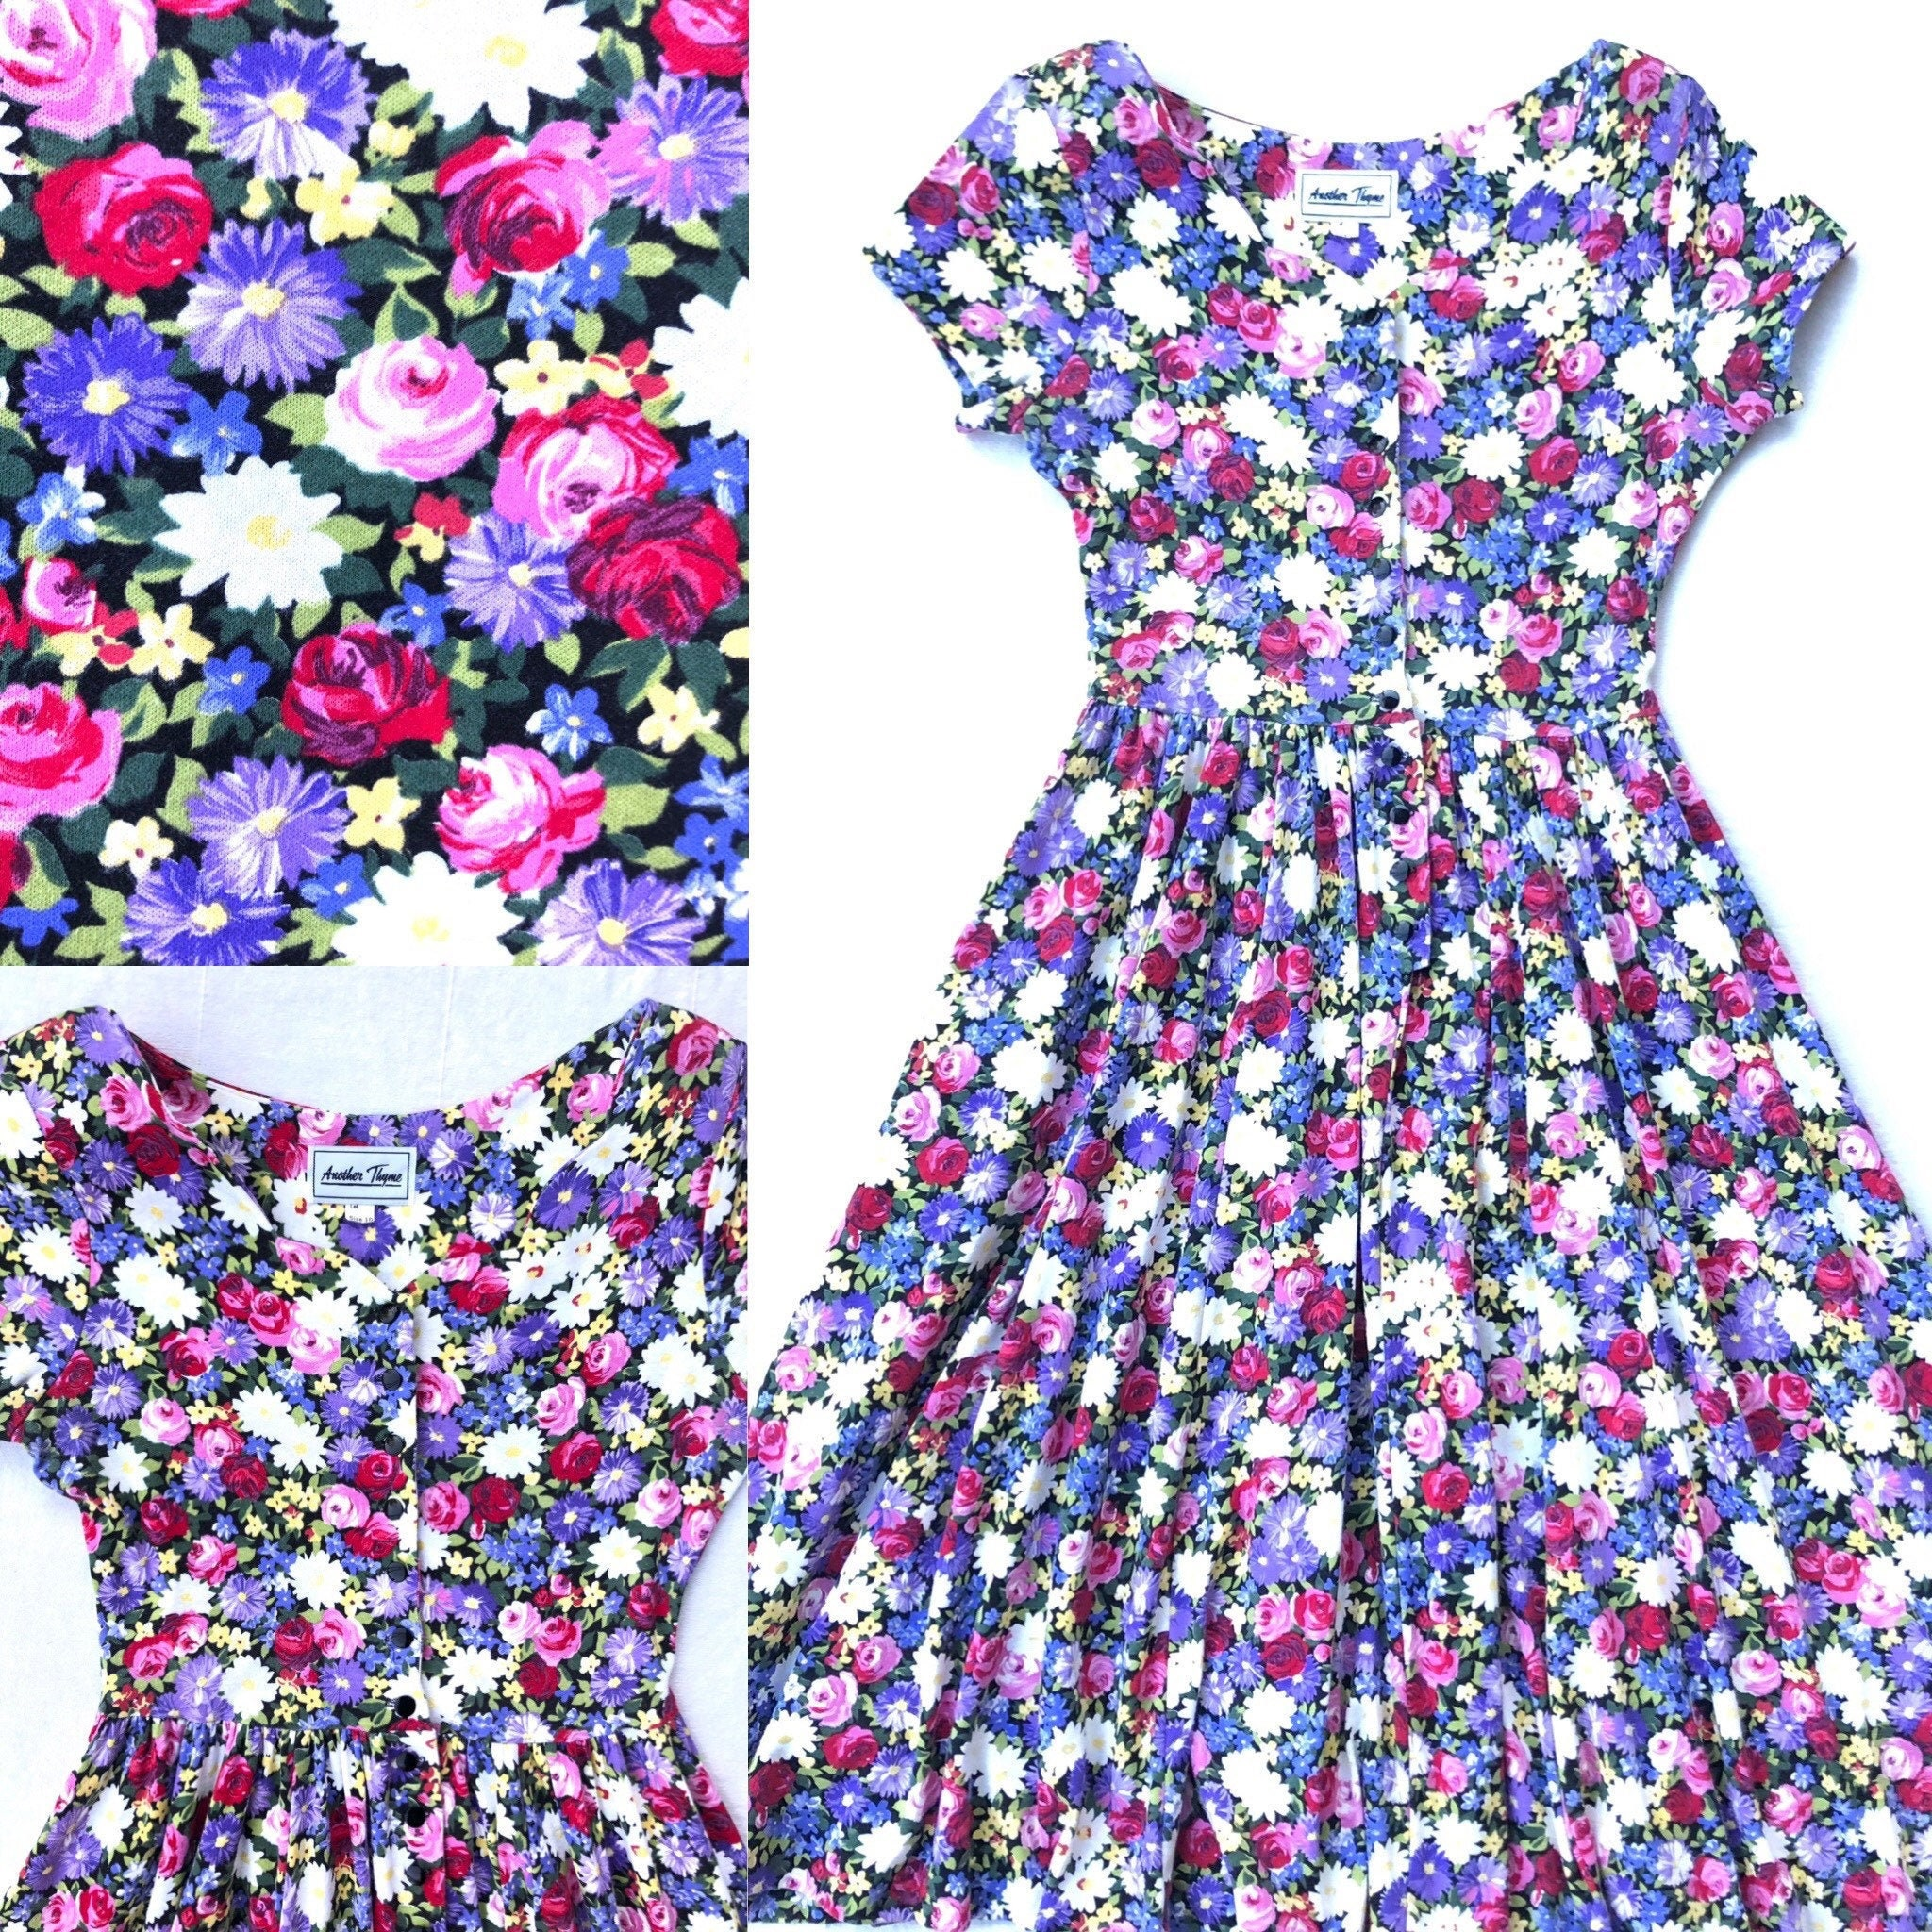 80s Dresses | Casual to Party Dresses Floral Full Skirt Scalloped Neckline Cotton Jersey Front Button Cap Sleeve Dress Med $0.00 AT vintagedancer.com